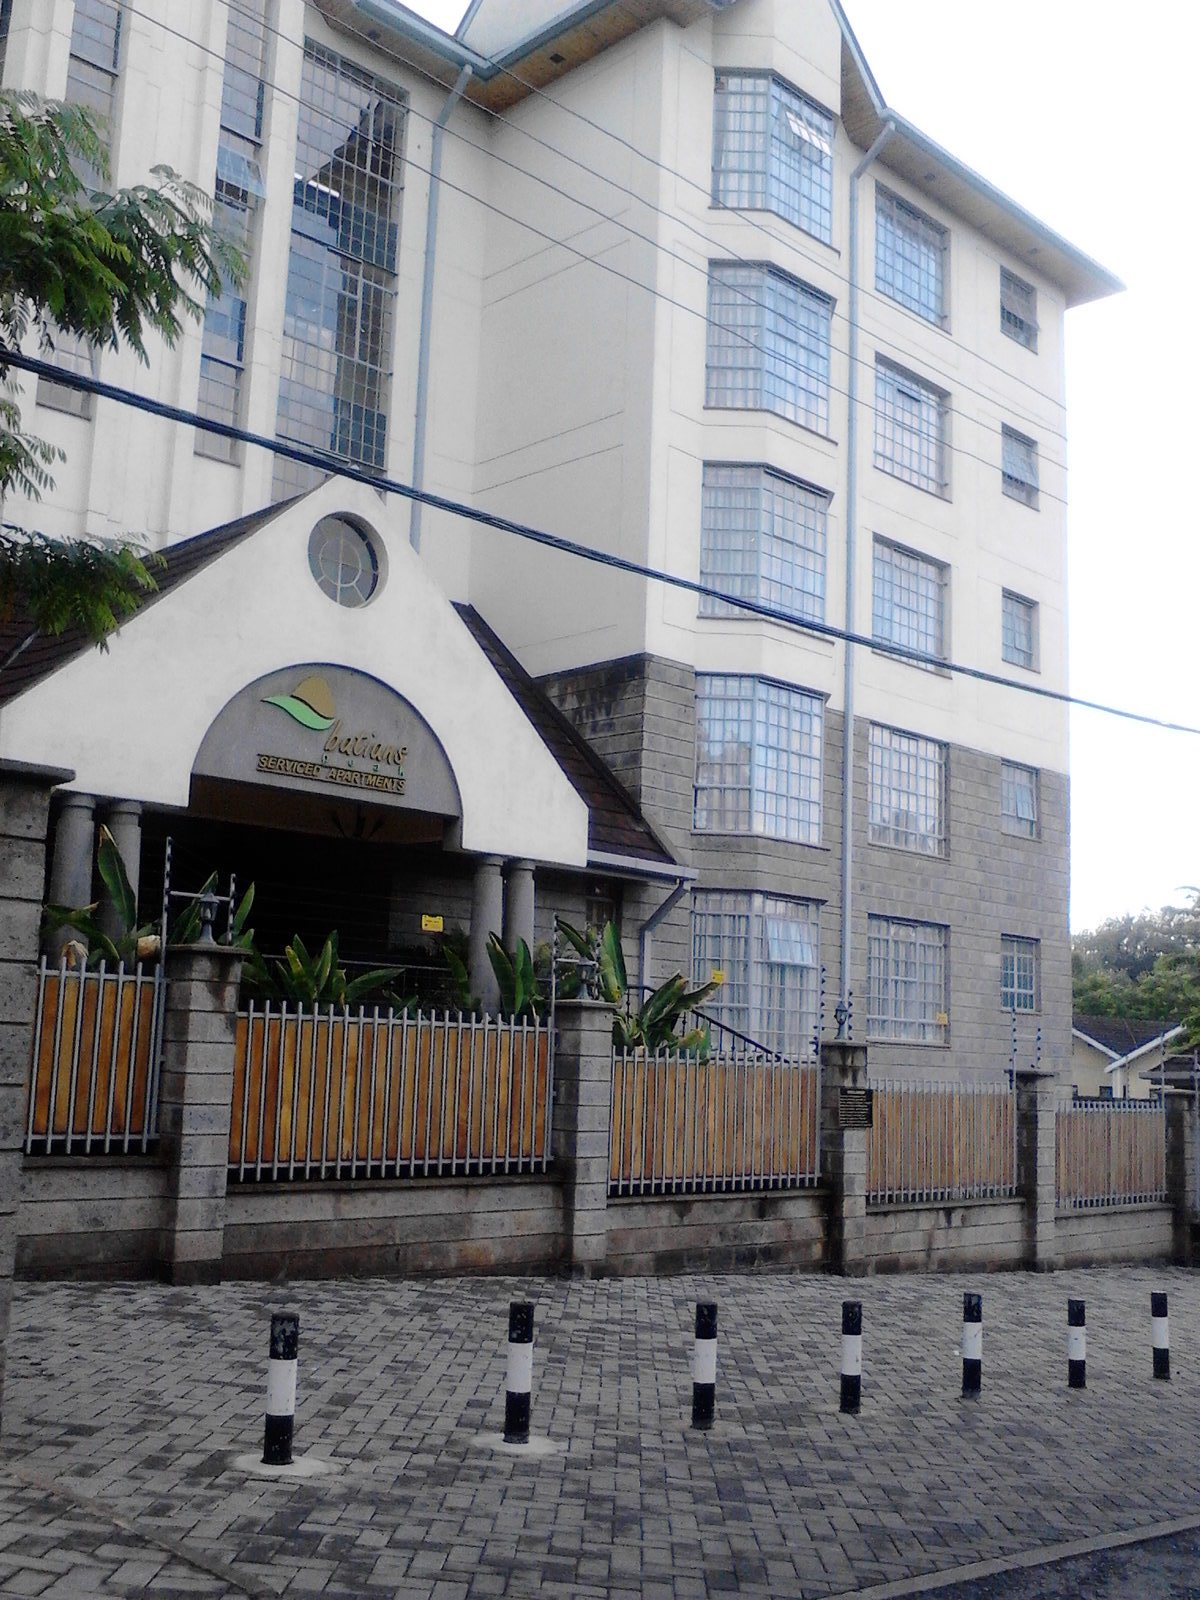 Luxury fully furnished 1 2 3 bedroom apartments for rent - 2 and 3 bedroom apartments for rent ...